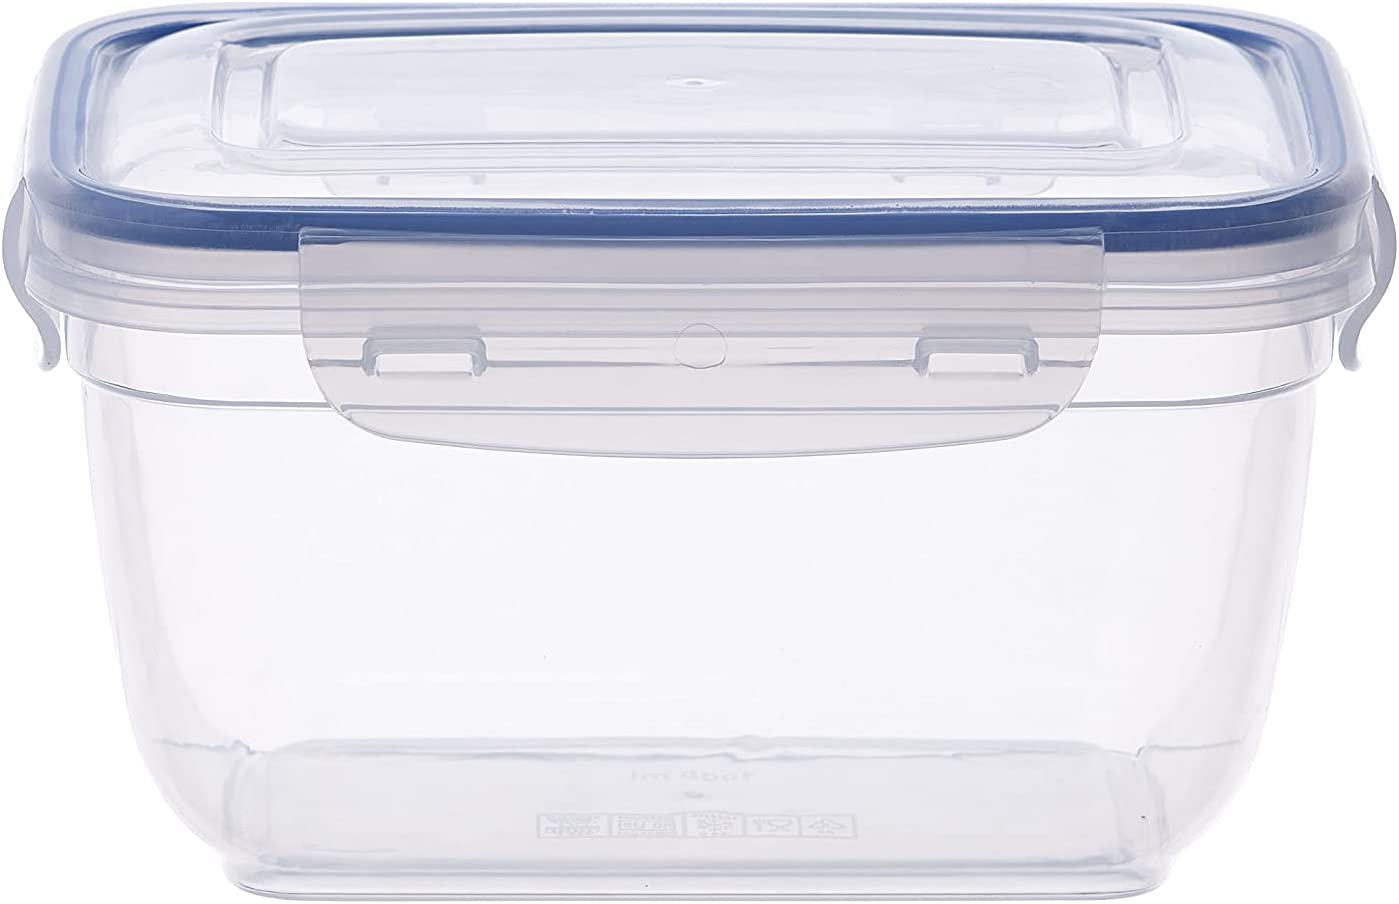 Superio Food Storage Containers, Airtight Leak-Proof Meal Prep Containers, Microwave and freezer safe, BPA-free Plastic, Square Container, 2.5 oz.